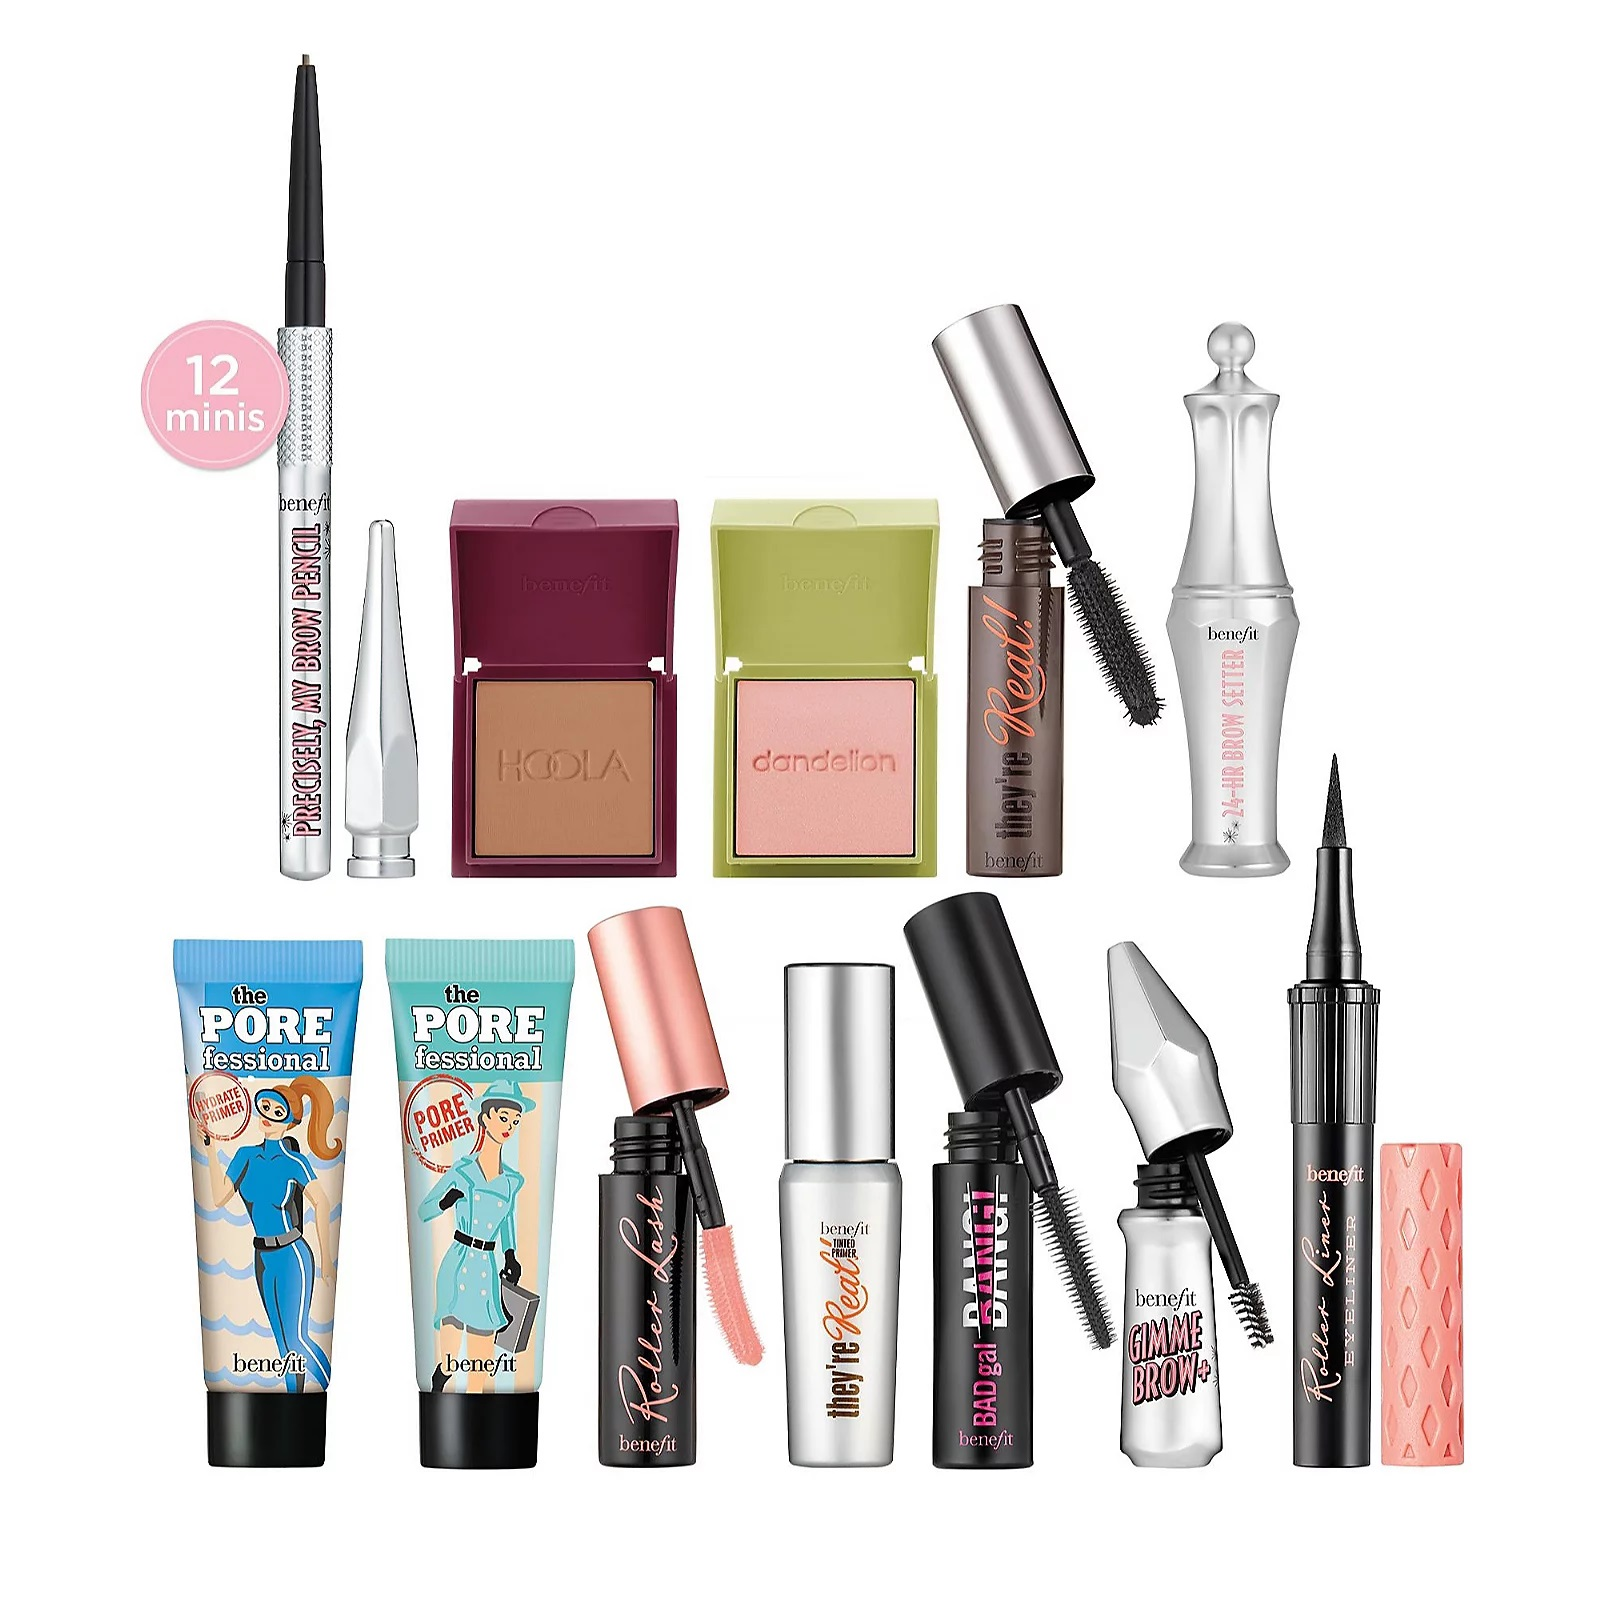 Benefit Shake Your Beauty Advent Calendar 2020 Contents Reveal